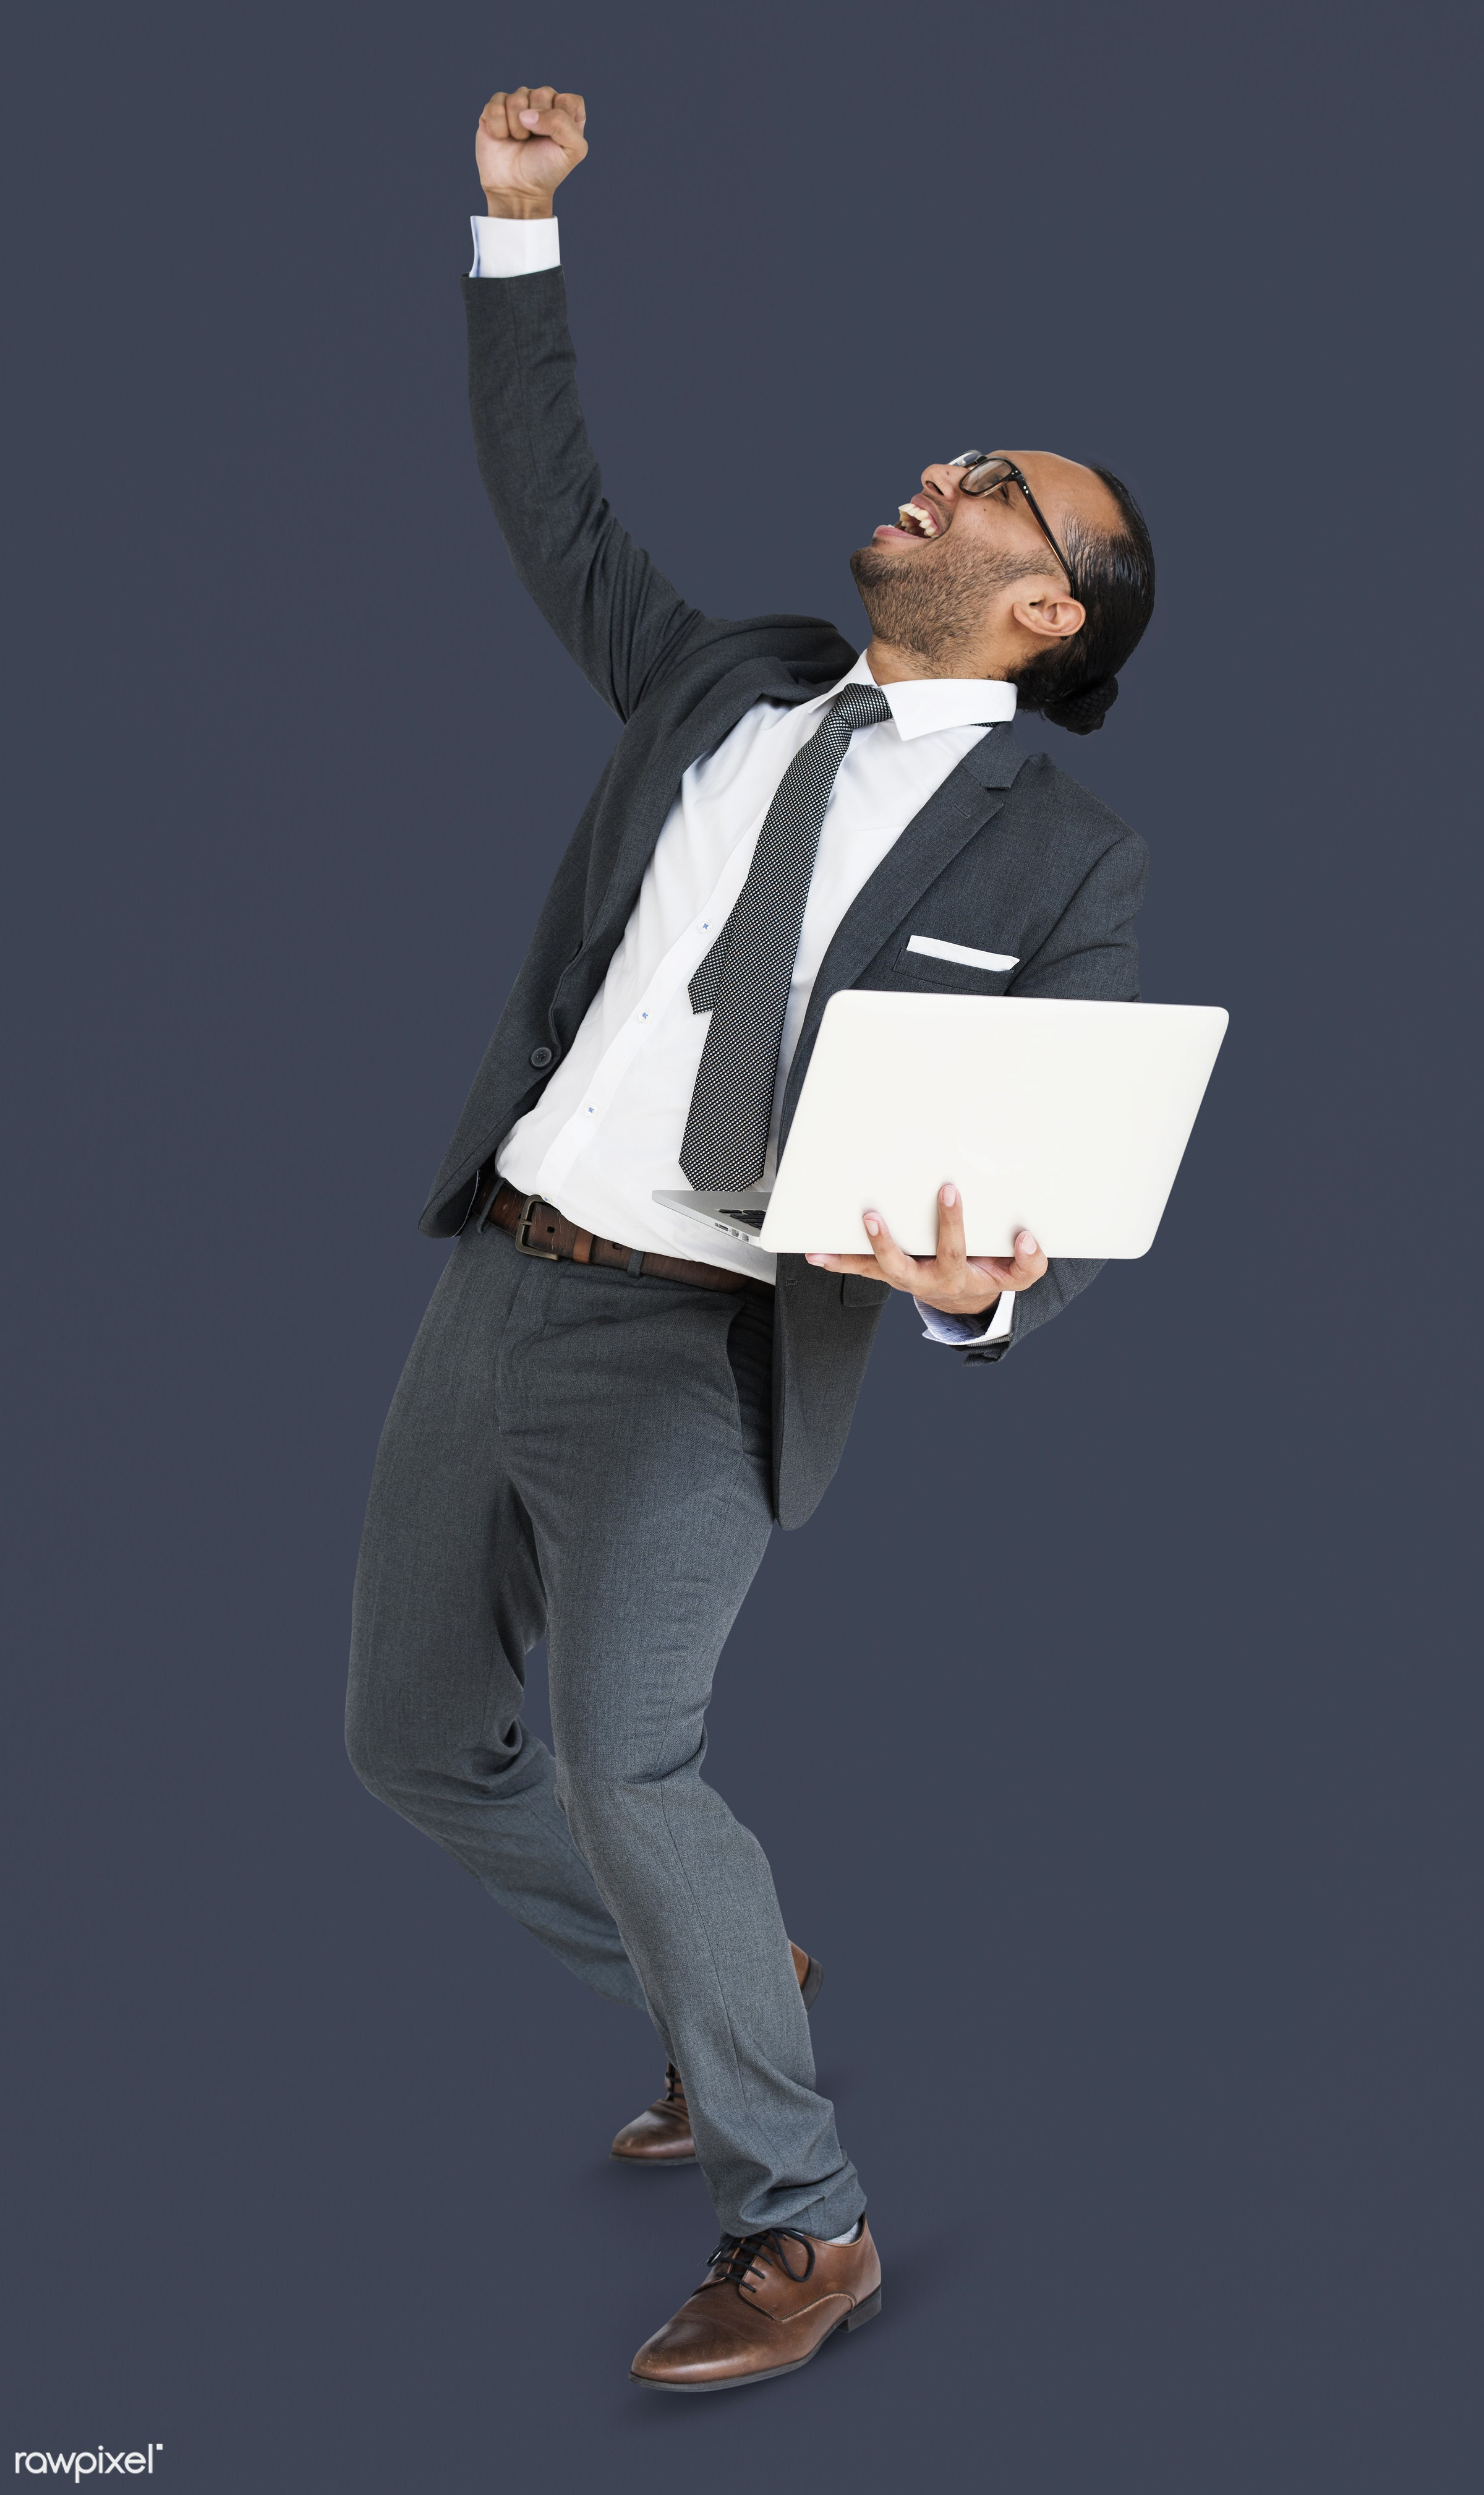 expression, studio, person, business wear, achieve, people, asian, happy, laptop, smile, cheerful, smiling, man, formal...